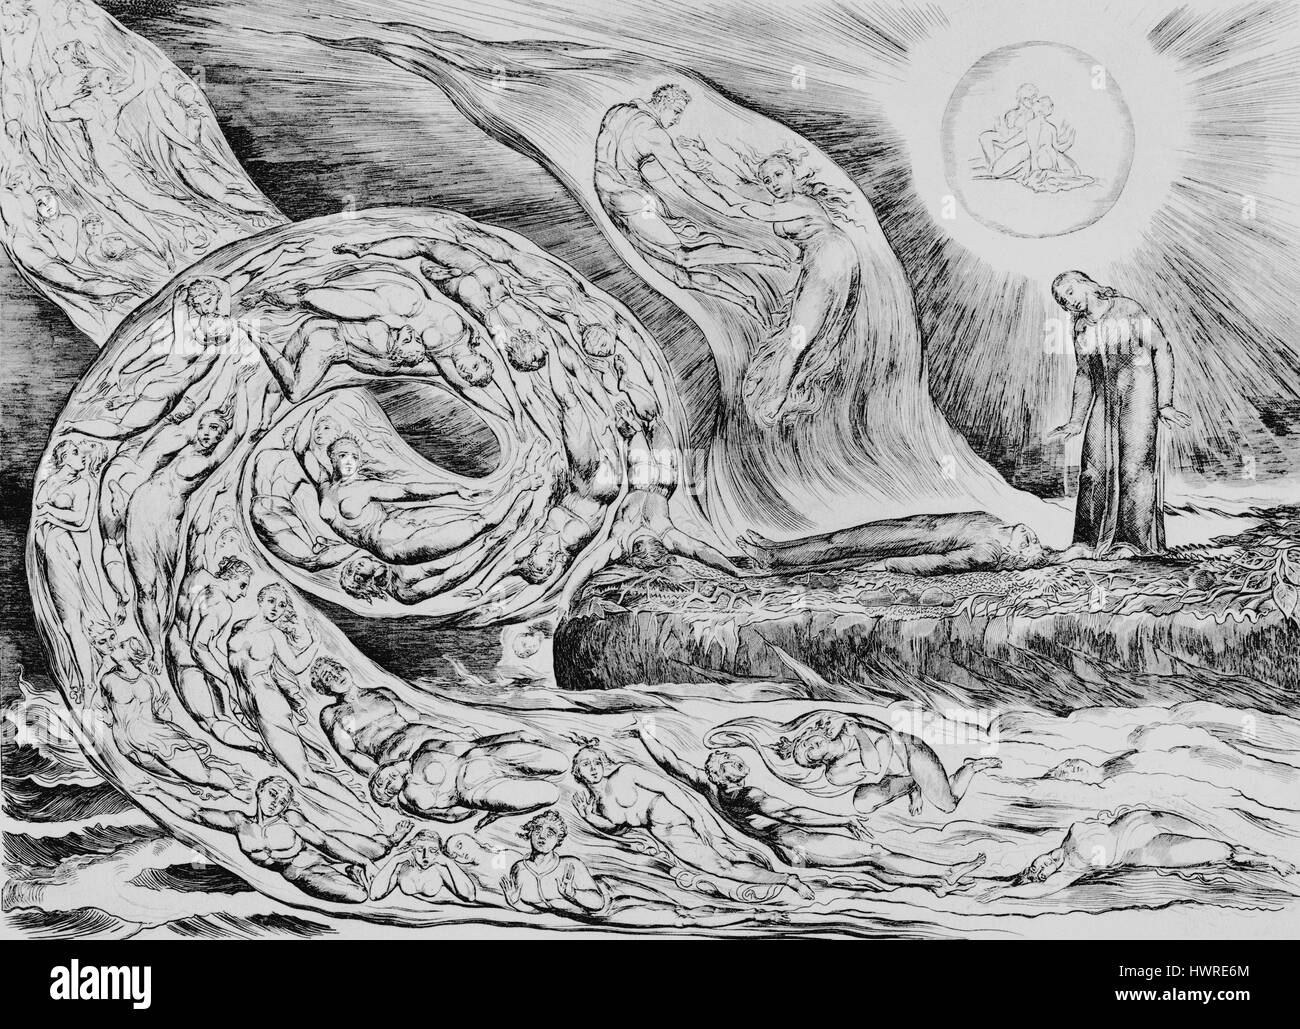 The Whirlwind of Lovers, Dante fainting with Pity at Francesca's Story by William Blake, from the illustrations - Stock Image